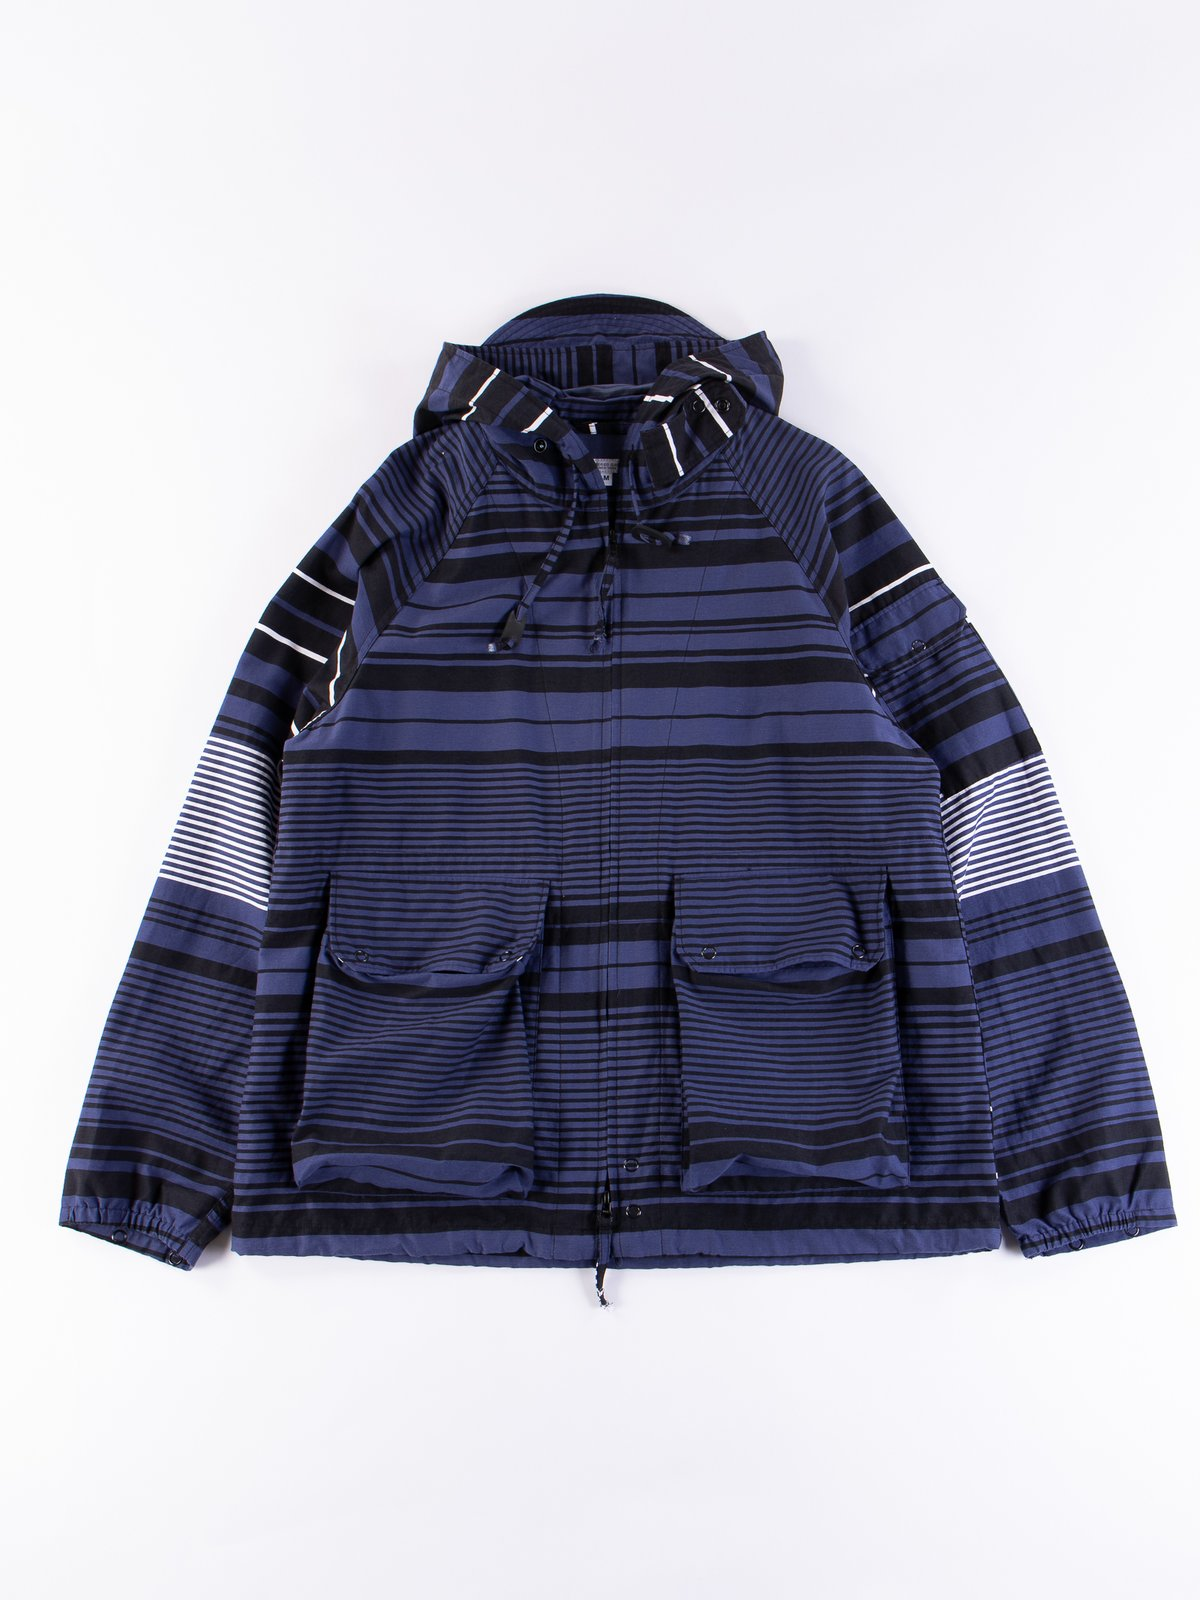 Navy Horizontal Stripe Activecloth Atlantic Parka - Image 1